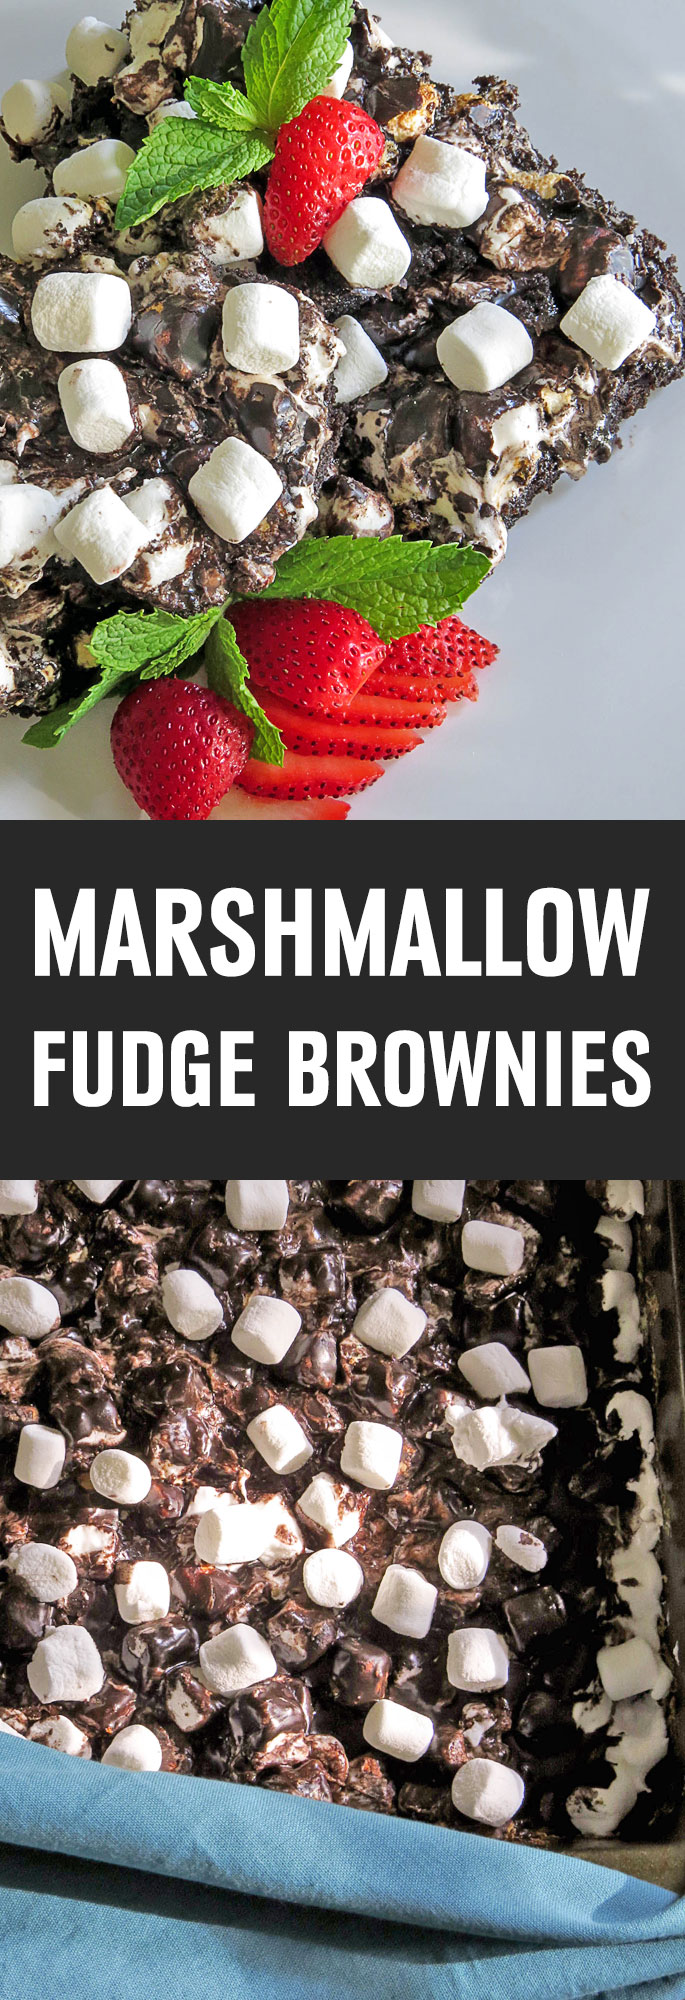 A rich fudgy brownie is topped with a gooey layer of melted marshmallows then drenched in sweet chocolate frosting for the chocolate sensation of your dreams! Shared via http://www.gluteninsight.com